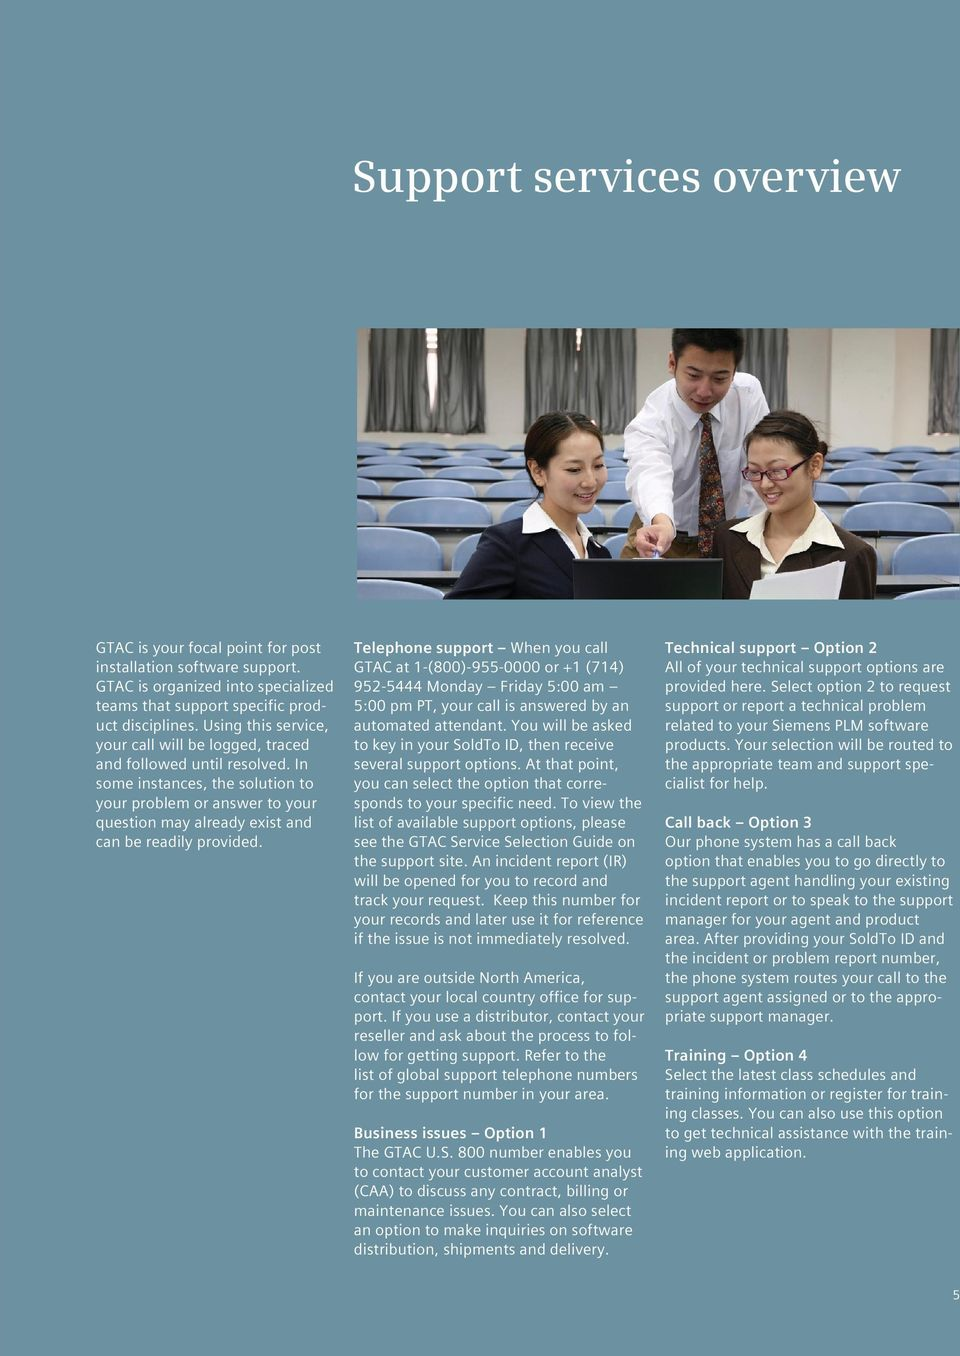 In some instances, the solution to your problem or answer to your question may already exist and can be readily provided.